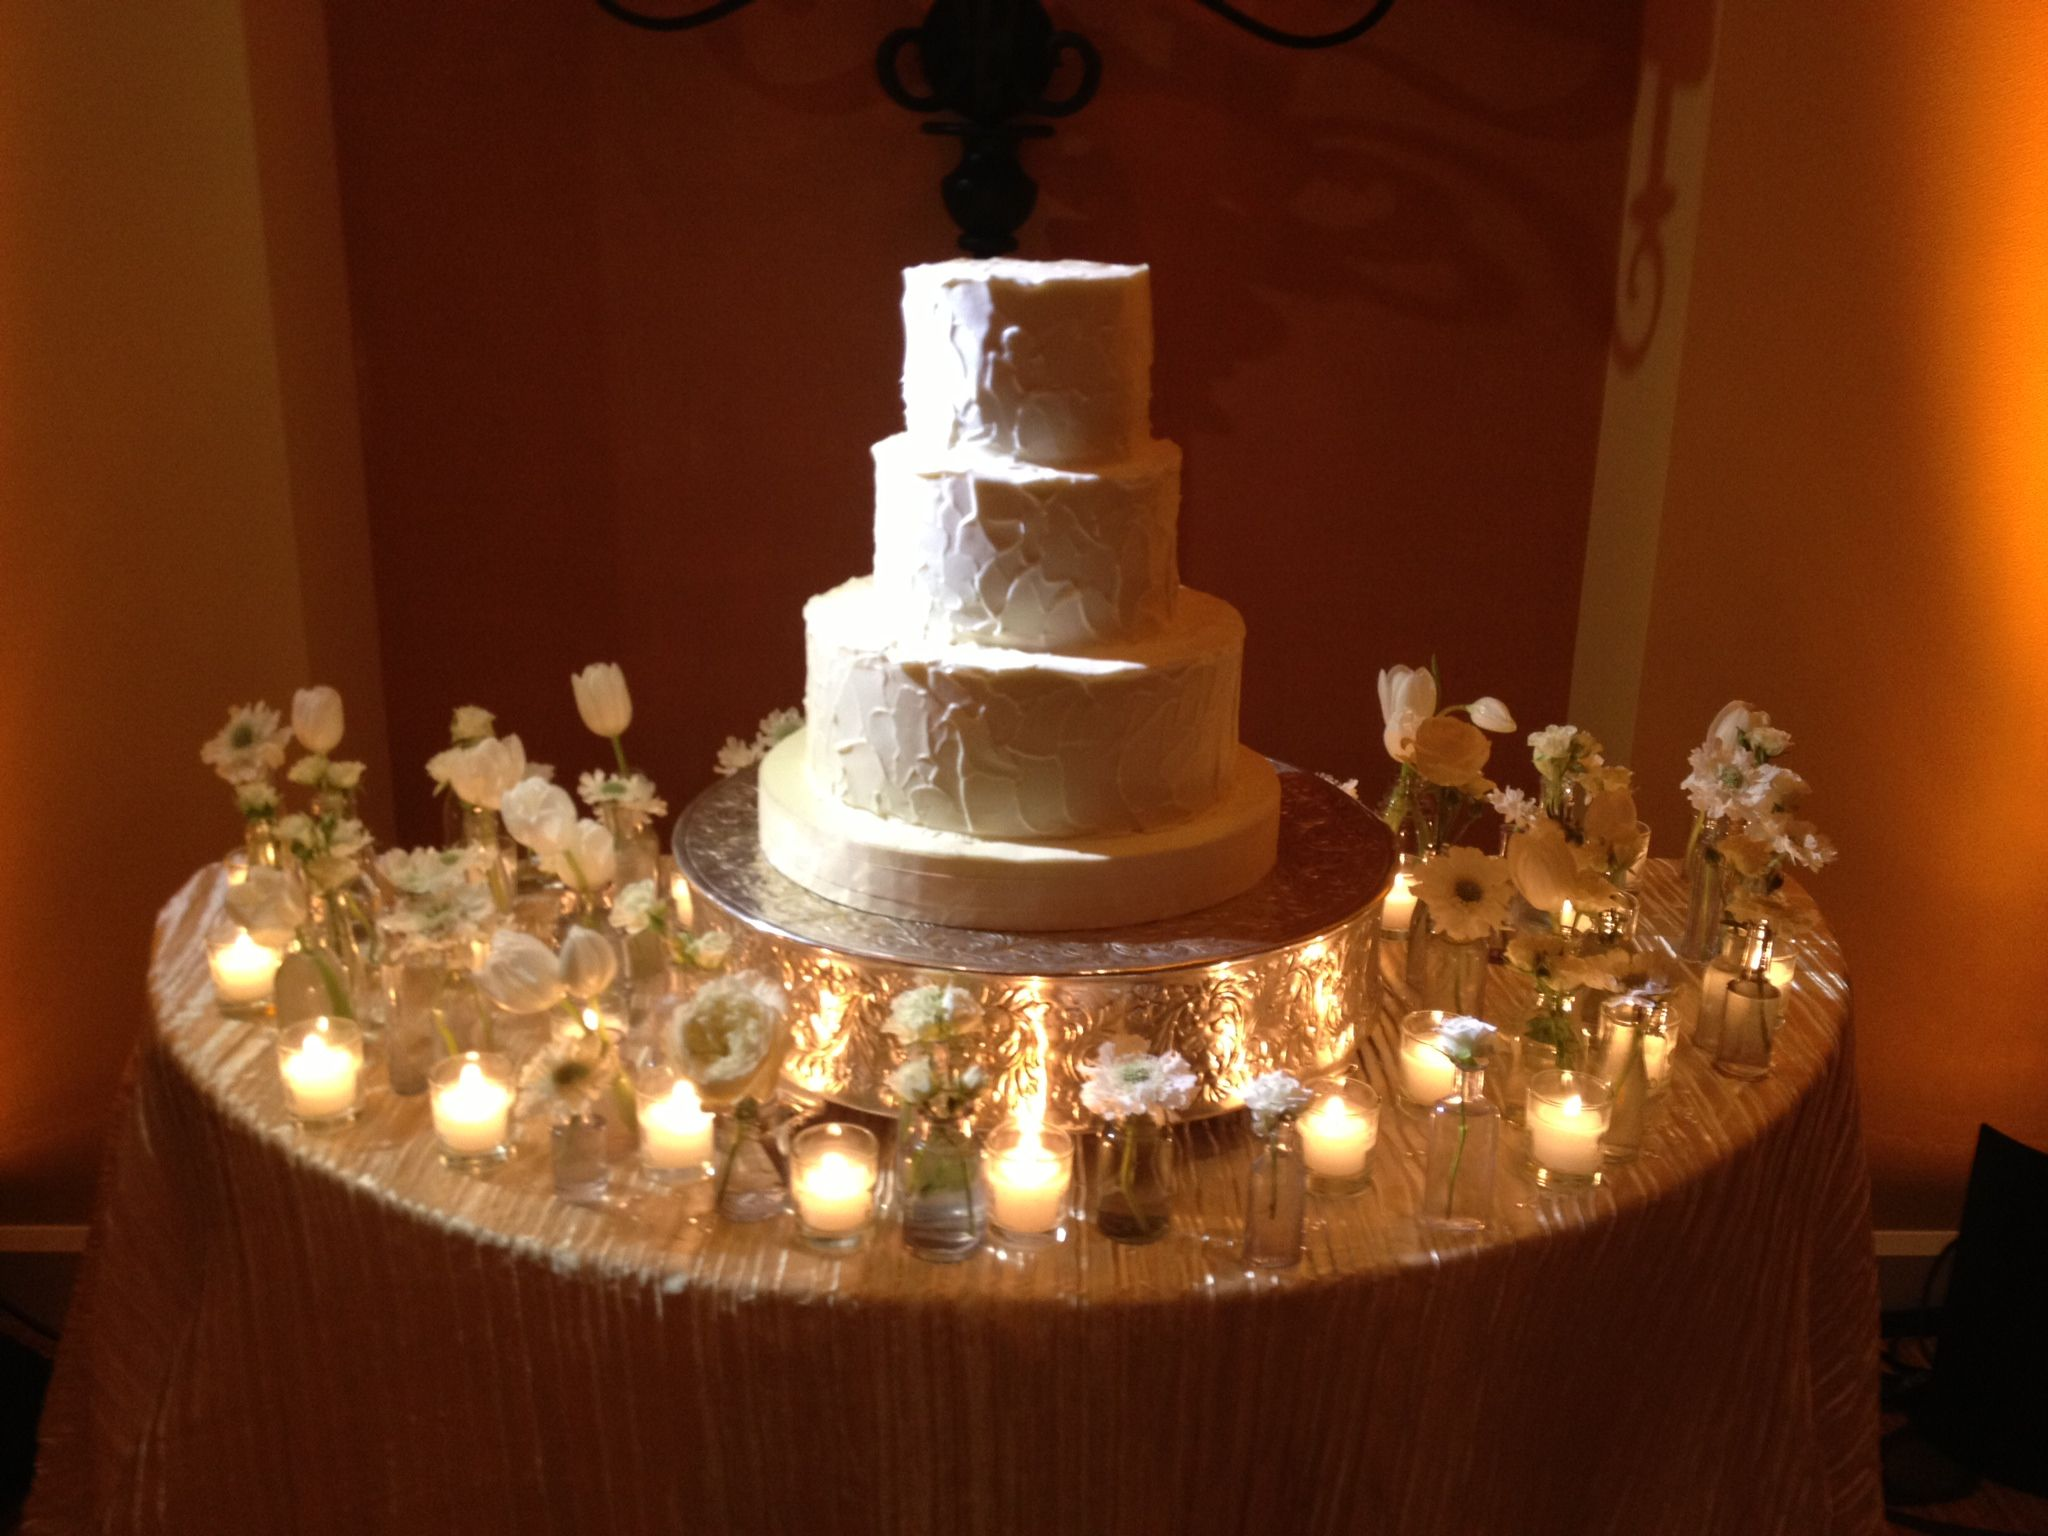 Wedding Cake Table Decorations Flowers : Cake table decor bud vases and votives flower box